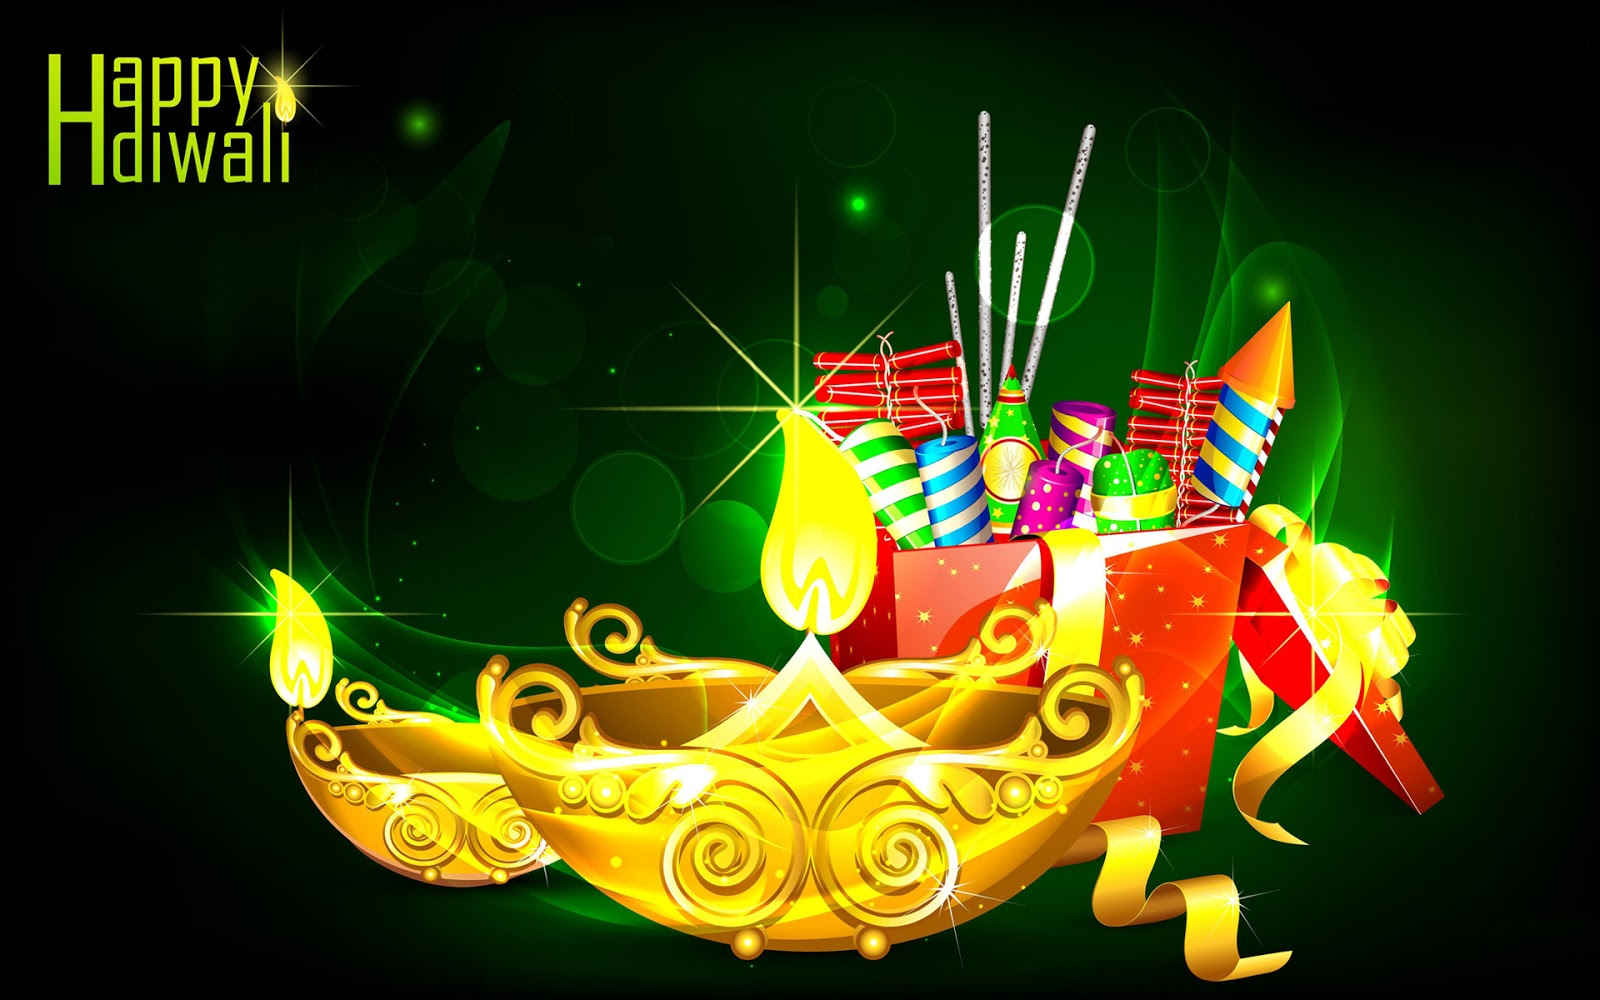 Happy Diwali 2013 Happy Diwali Fireworks And Crackers Hd Wallpapers